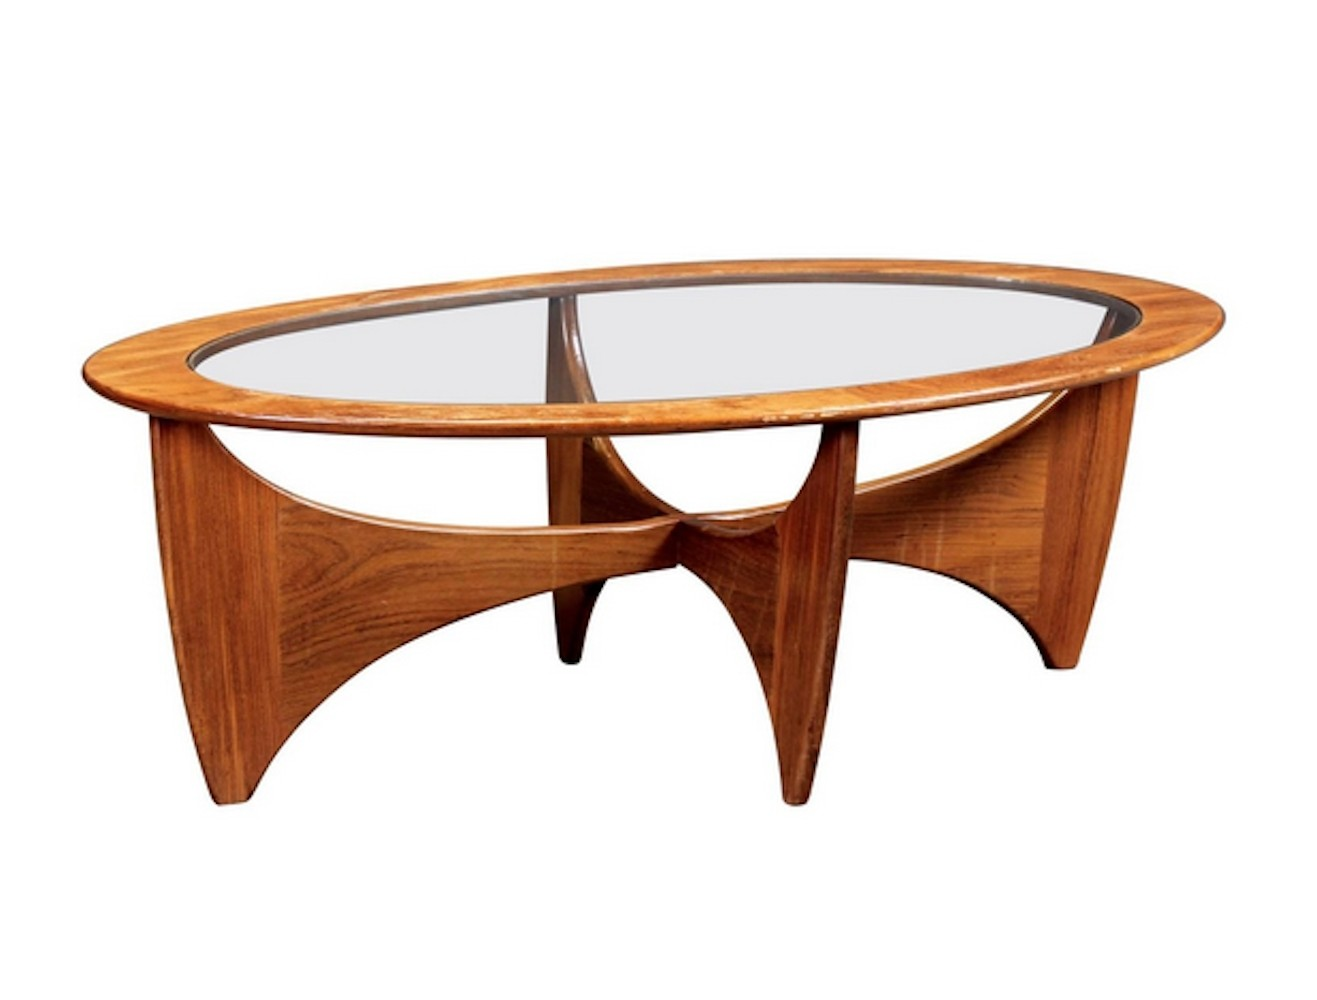 - Oval Teak Coffee Table With Glass Top By G-Plan #76093